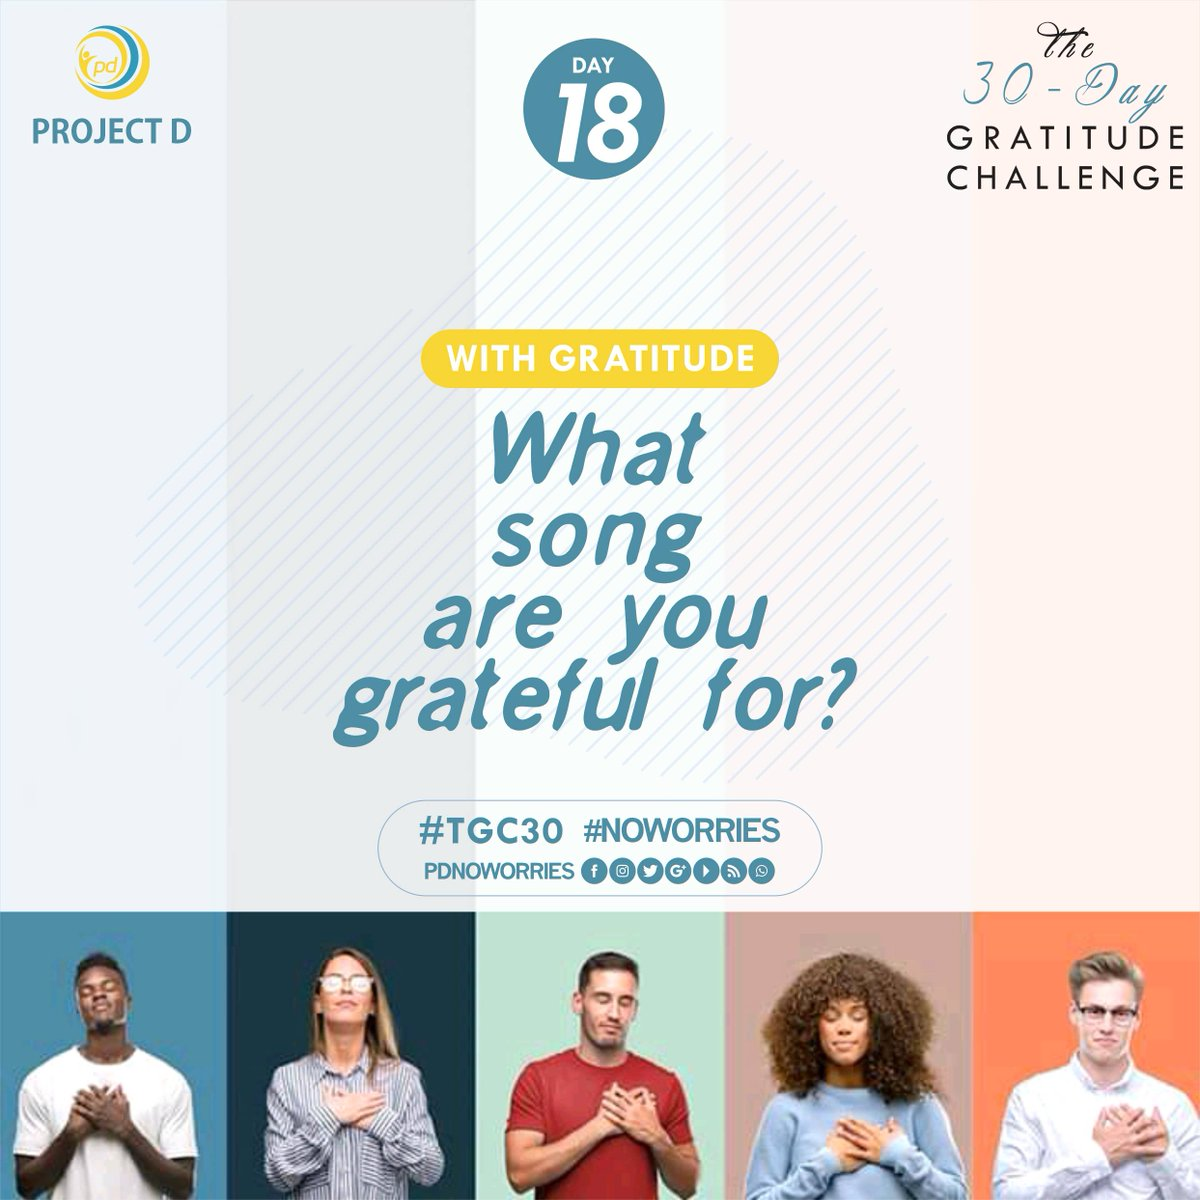 DAY 18-THE GRATITUDE CHALLENGE  The best pain killer still remains music. We listen to them in good and down times. Which are you grateful for 😊  #day18 #song #tgc30 #join #gratitude #gratitudechallenge #mentalhealth #notodepression #notosuicide #yestolife #projectd #noworries